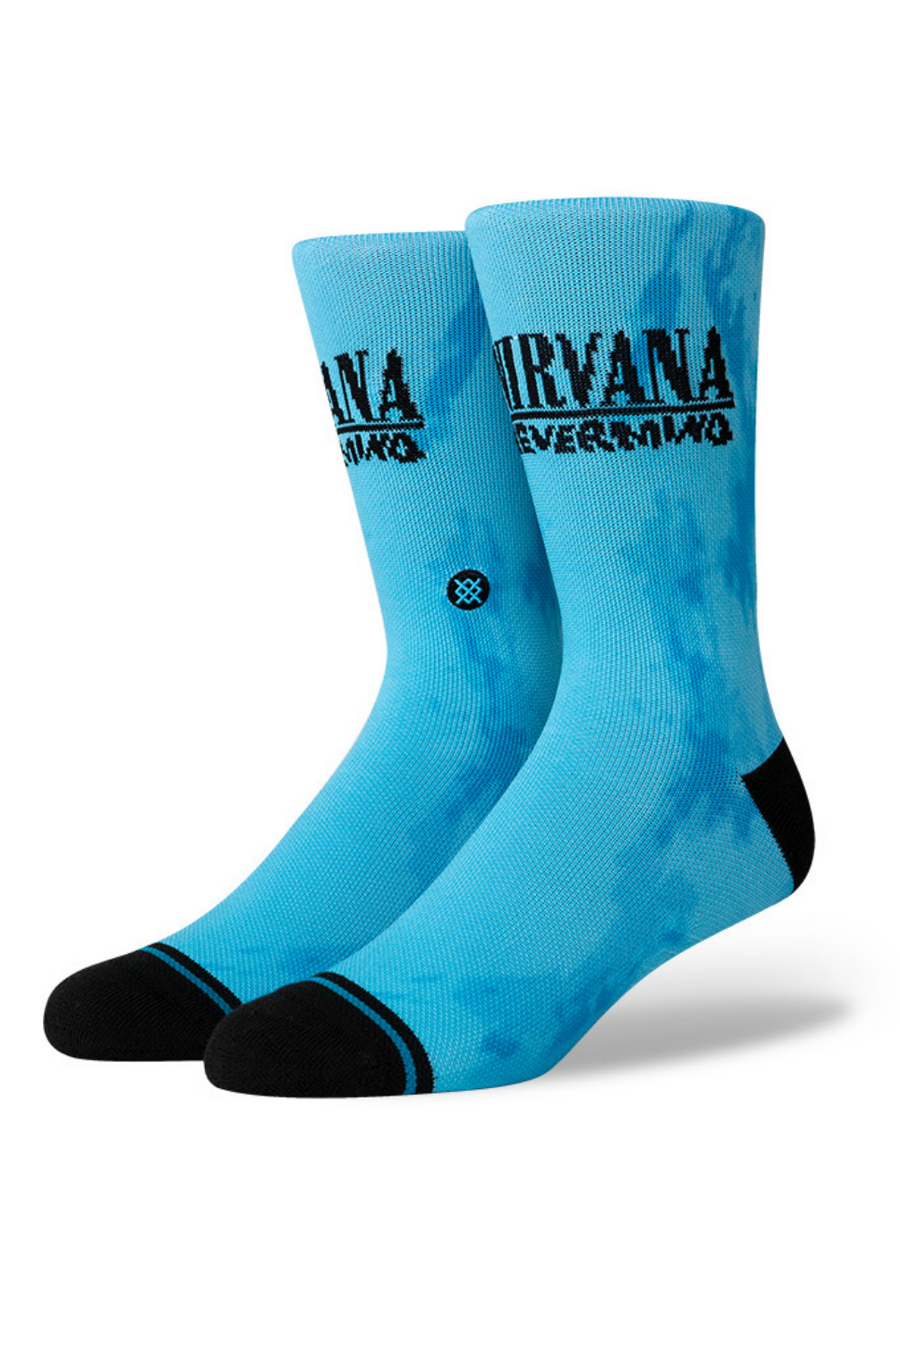 Stance Nirvana Nevermind Sock in Blue